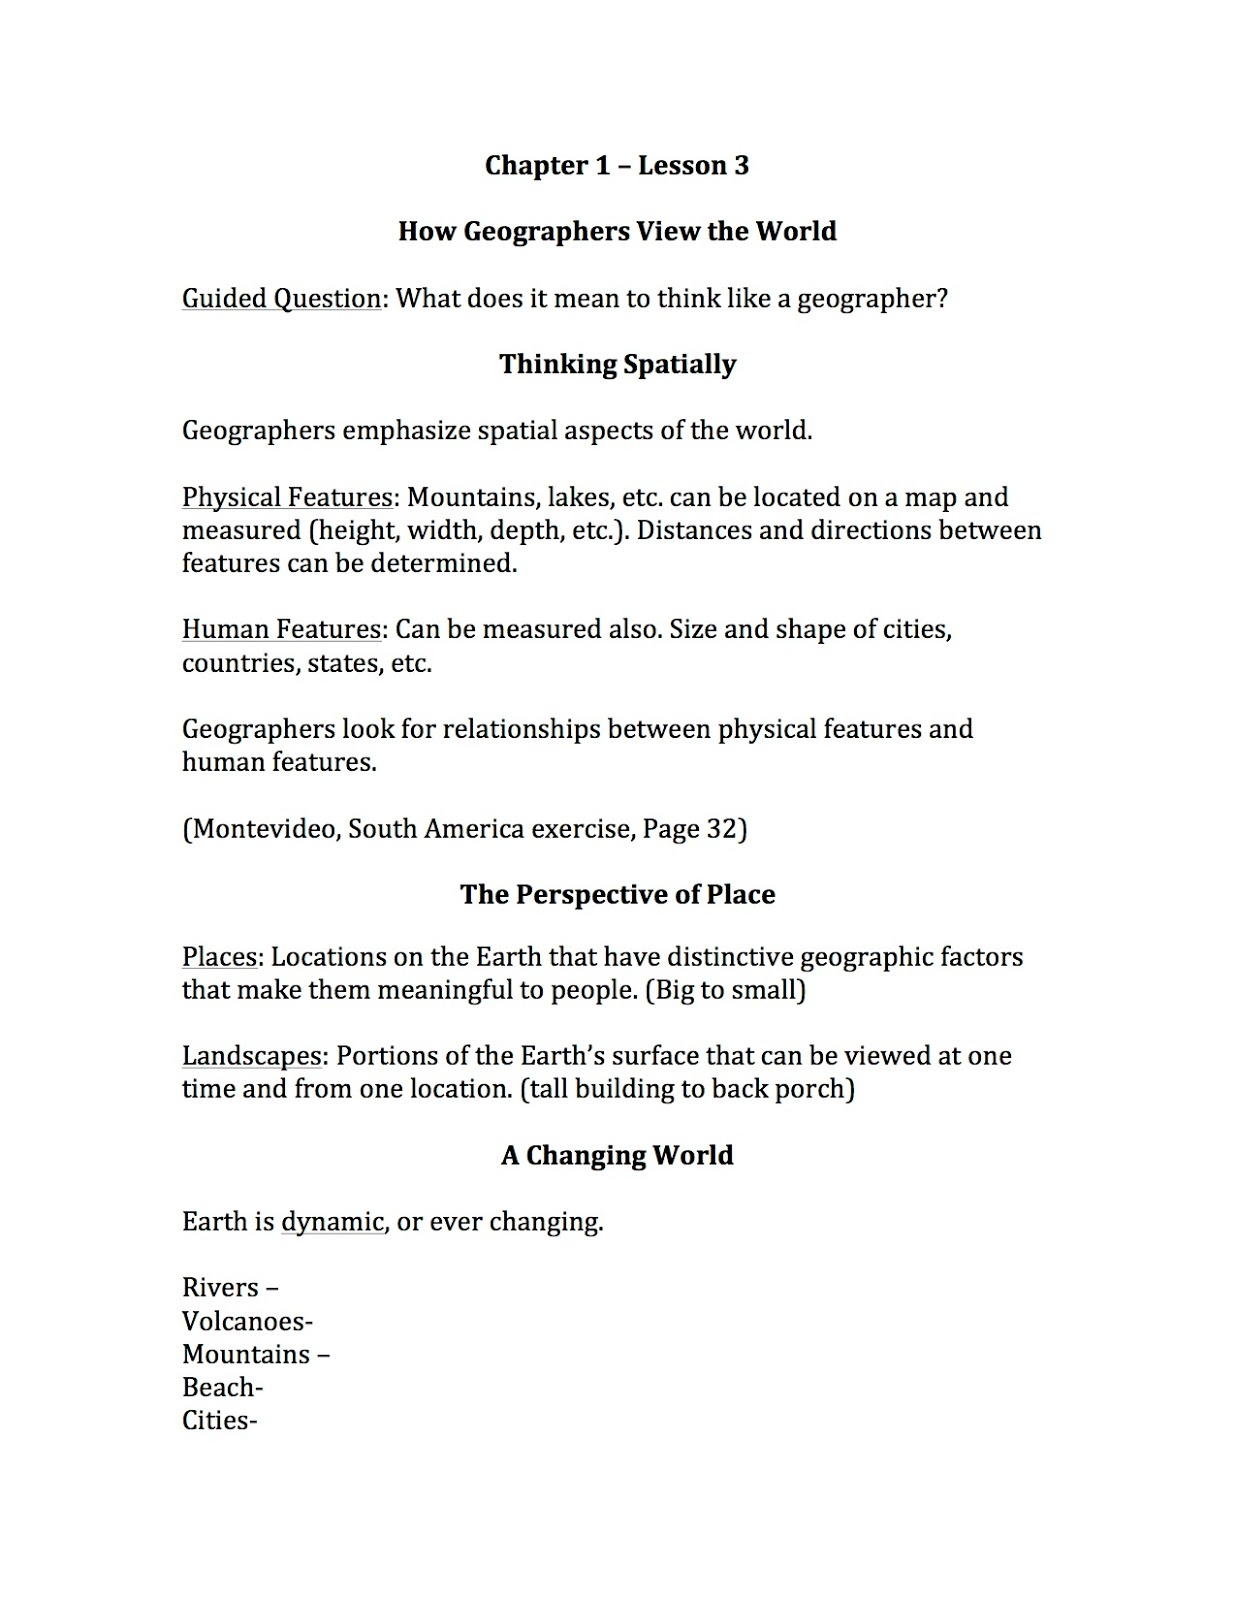 Ehms World Cultures Amp Geography How Geographers View The